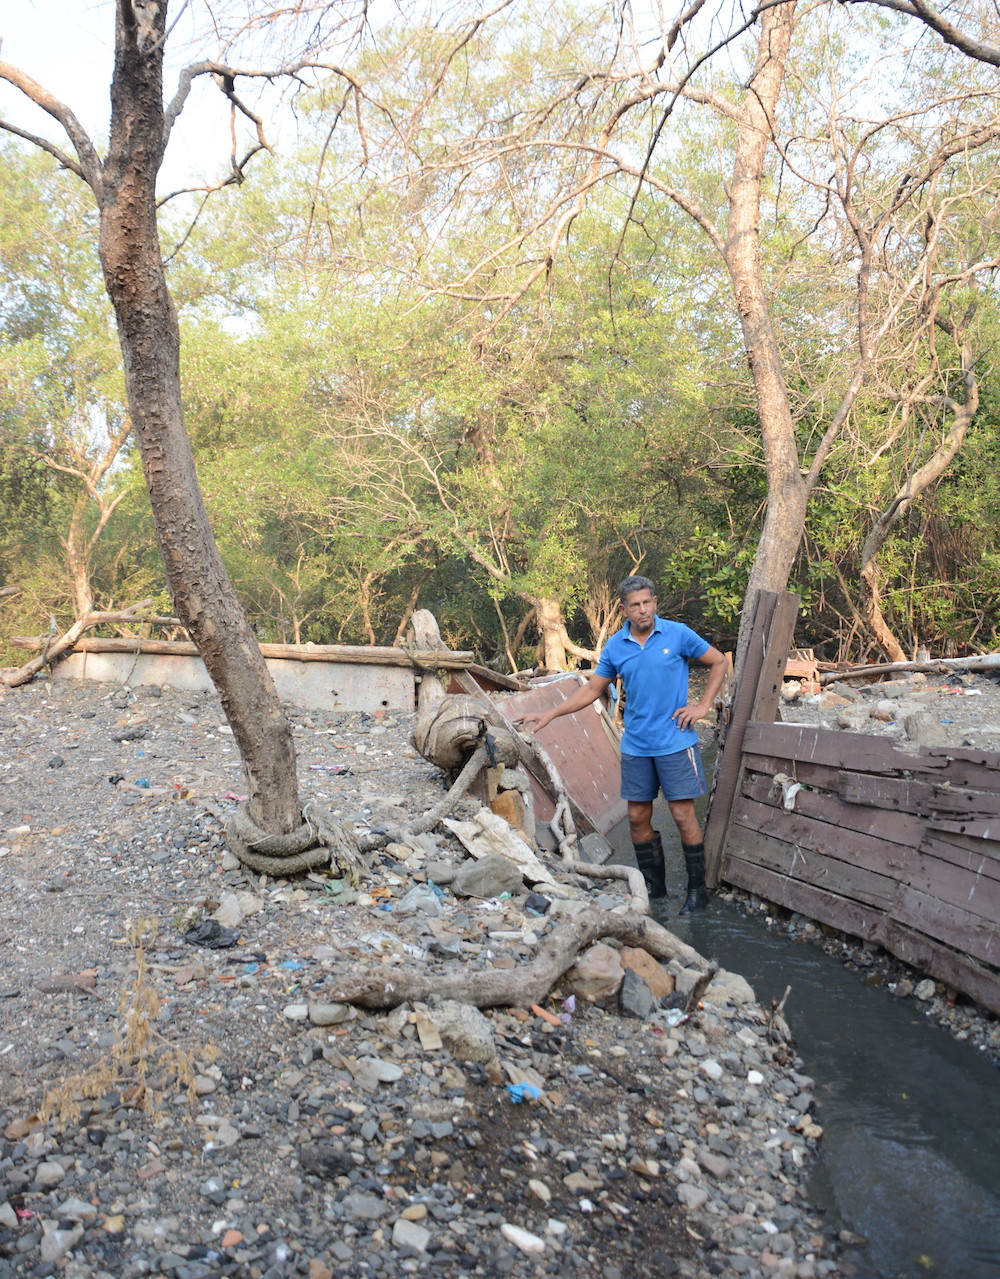 Rehan Merchant leads a beach cleanup at Bandra in Bombay, halting the flow of plastic into the ocean. Image: Ketaki Savnal